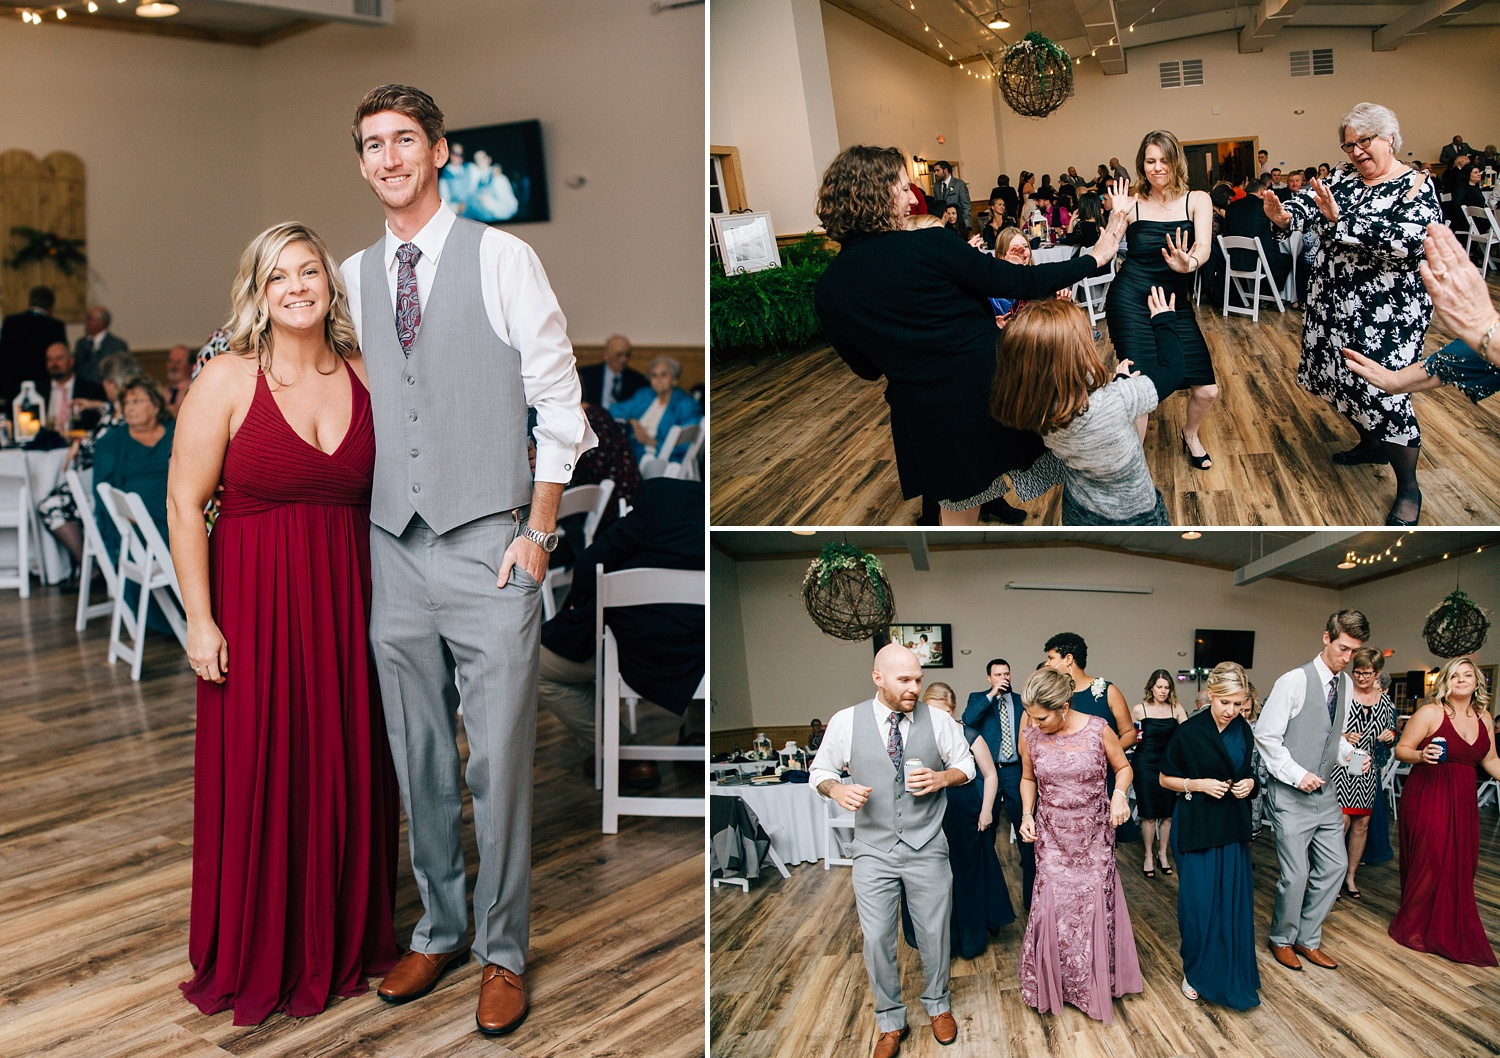 wedding reception at the cotton barn in winterville nc